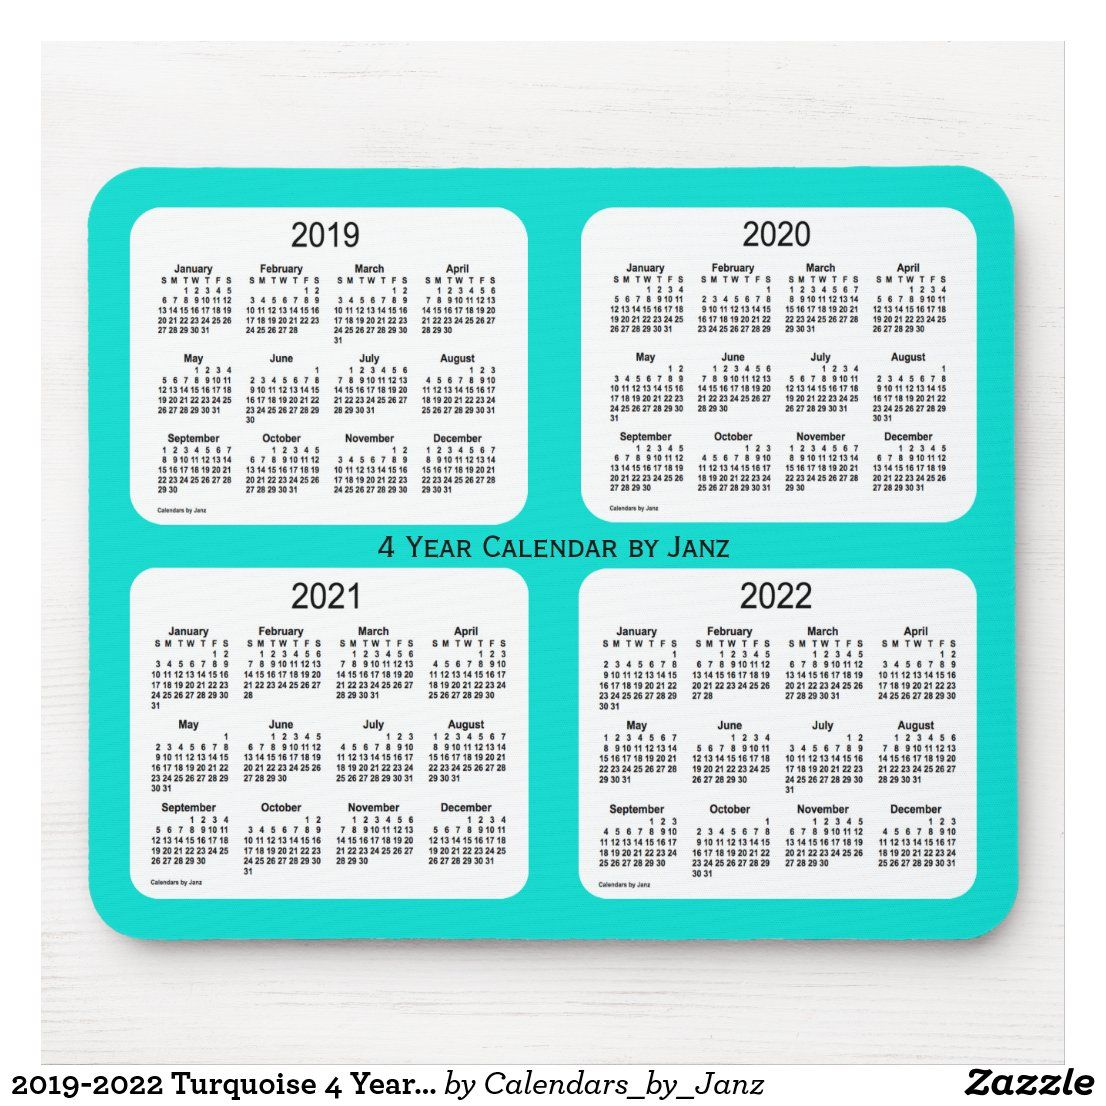 20192022 Turquoise 4 Year Calendar by Janz Mouse Pad